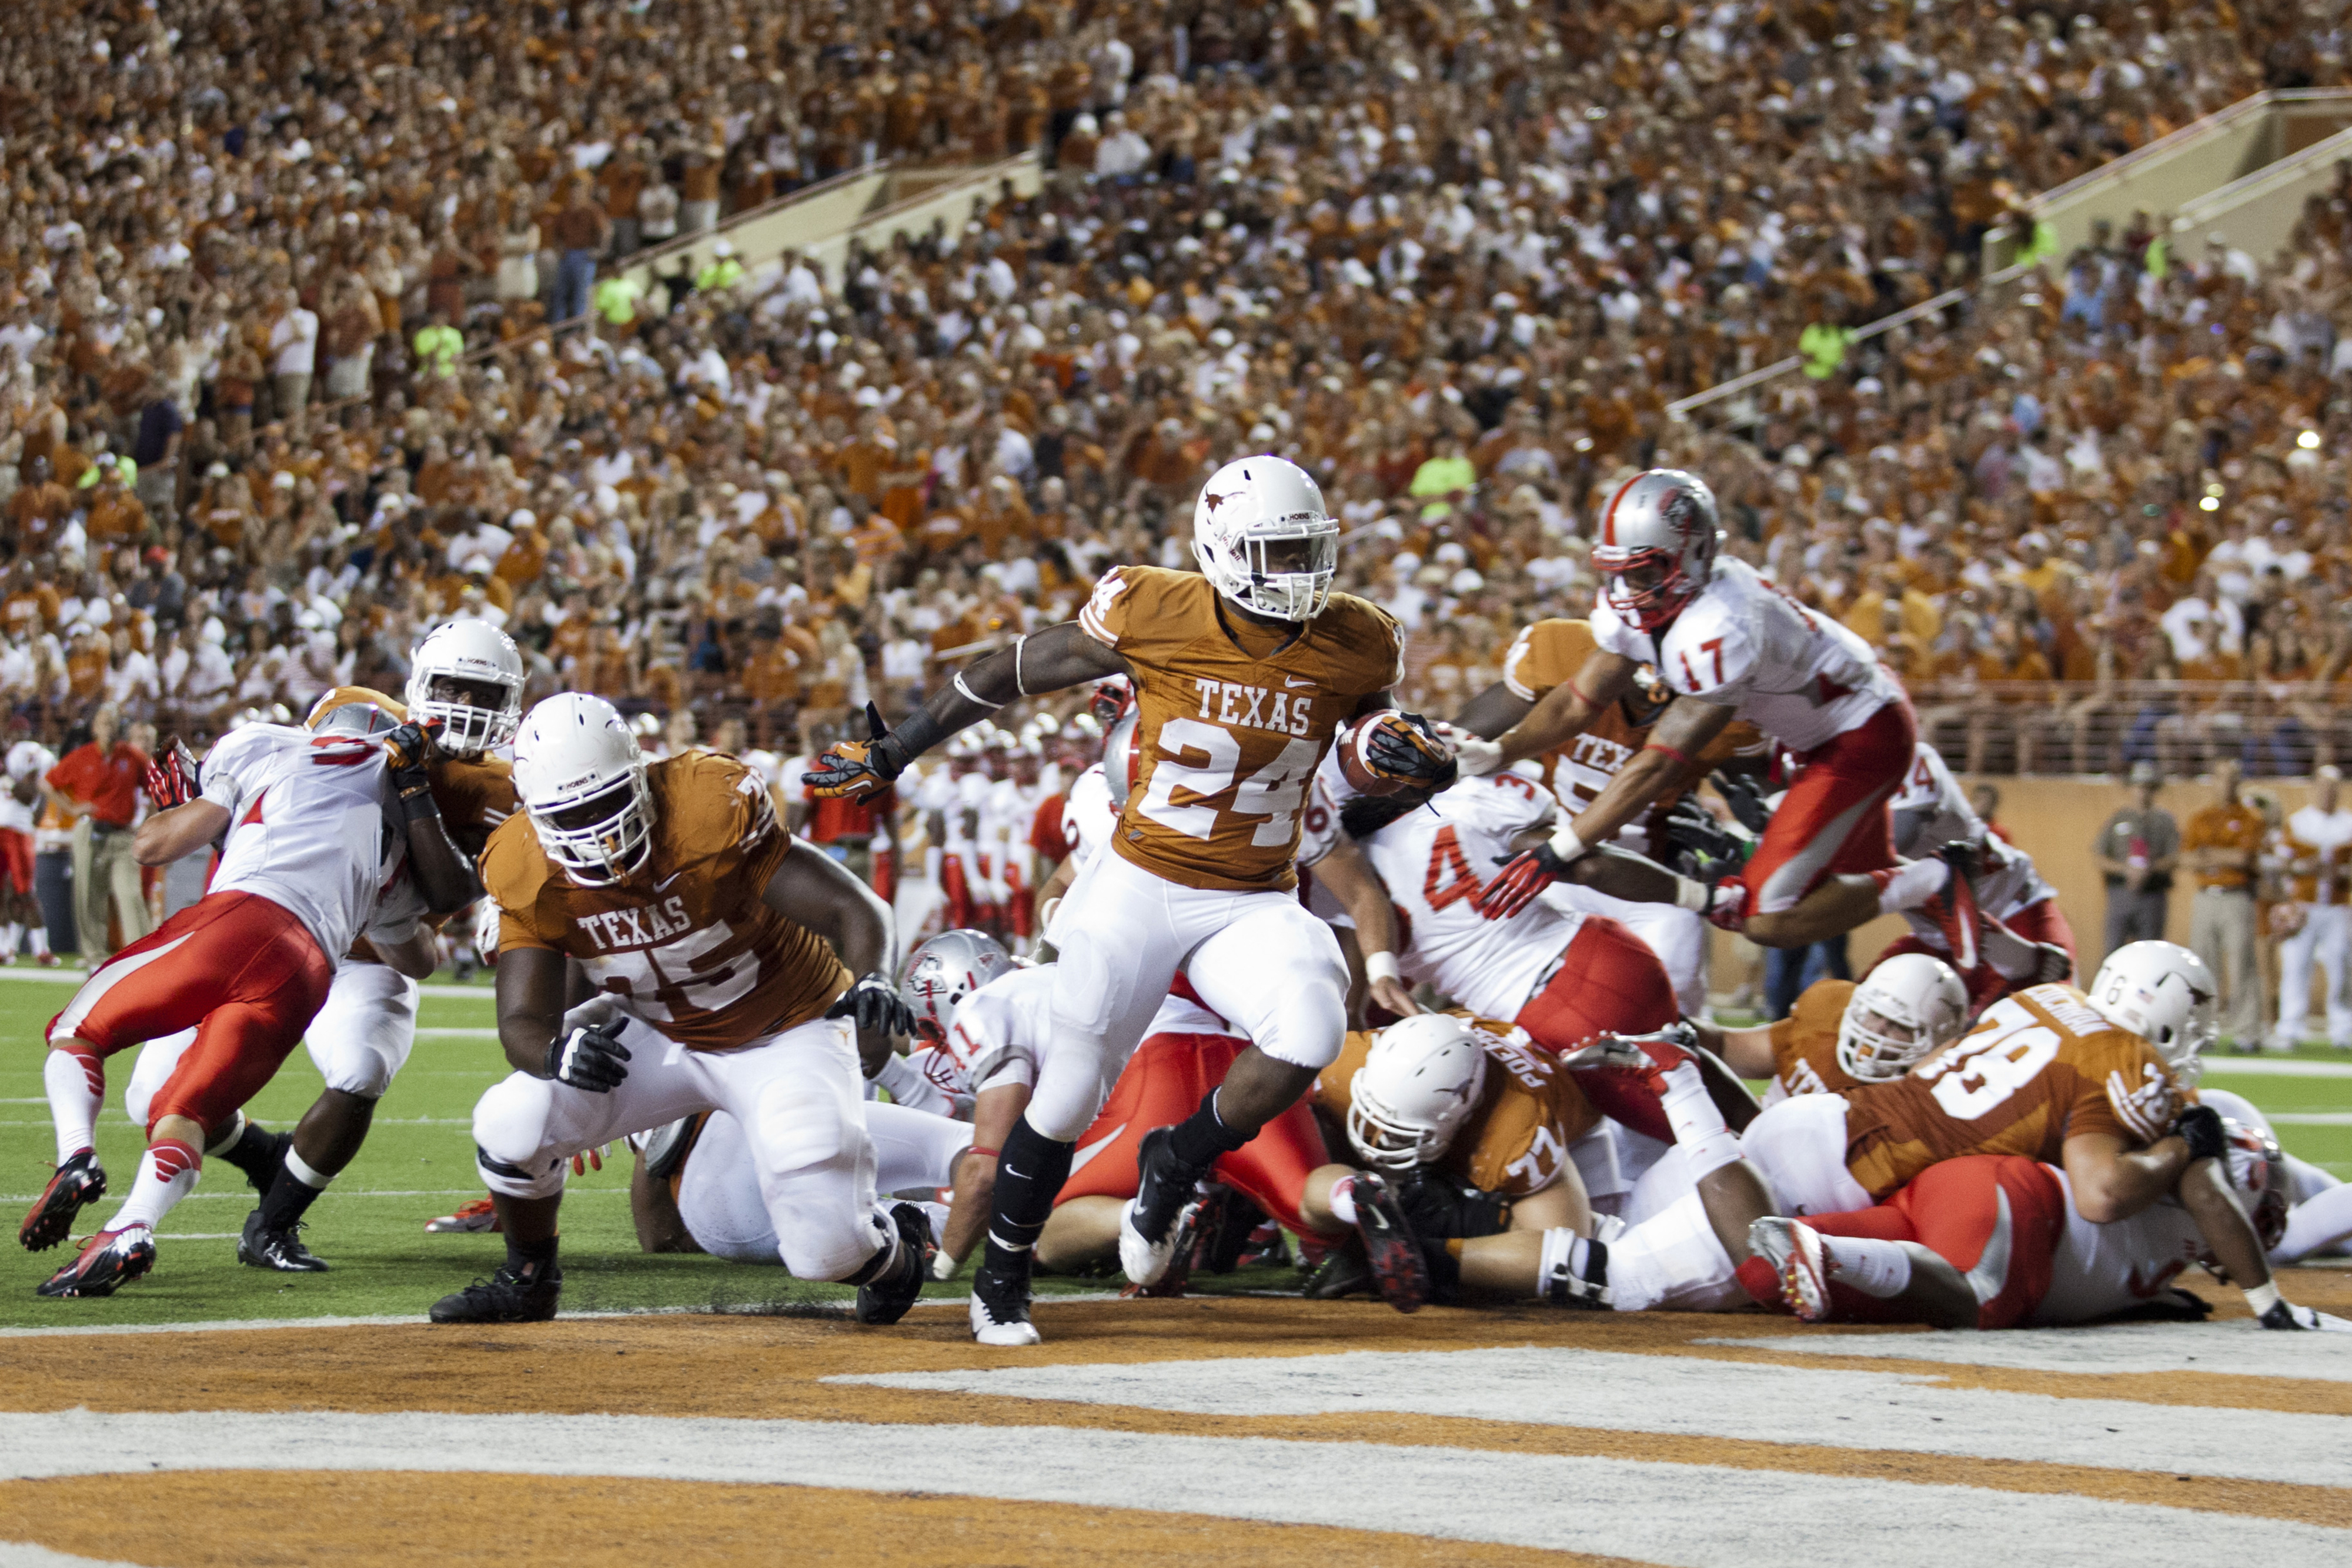 AUSTIN, TX - SEPTEMBER 8: Joe Bergeron #24 of the Texas Longhorns scores a touchdown against the University of New Mexico Lobos on September 8, 2012 at Darrell K Royal-Texas Memorial Stadium in Austin, Texas. (Photo by Cooper Neill/Getty Images)